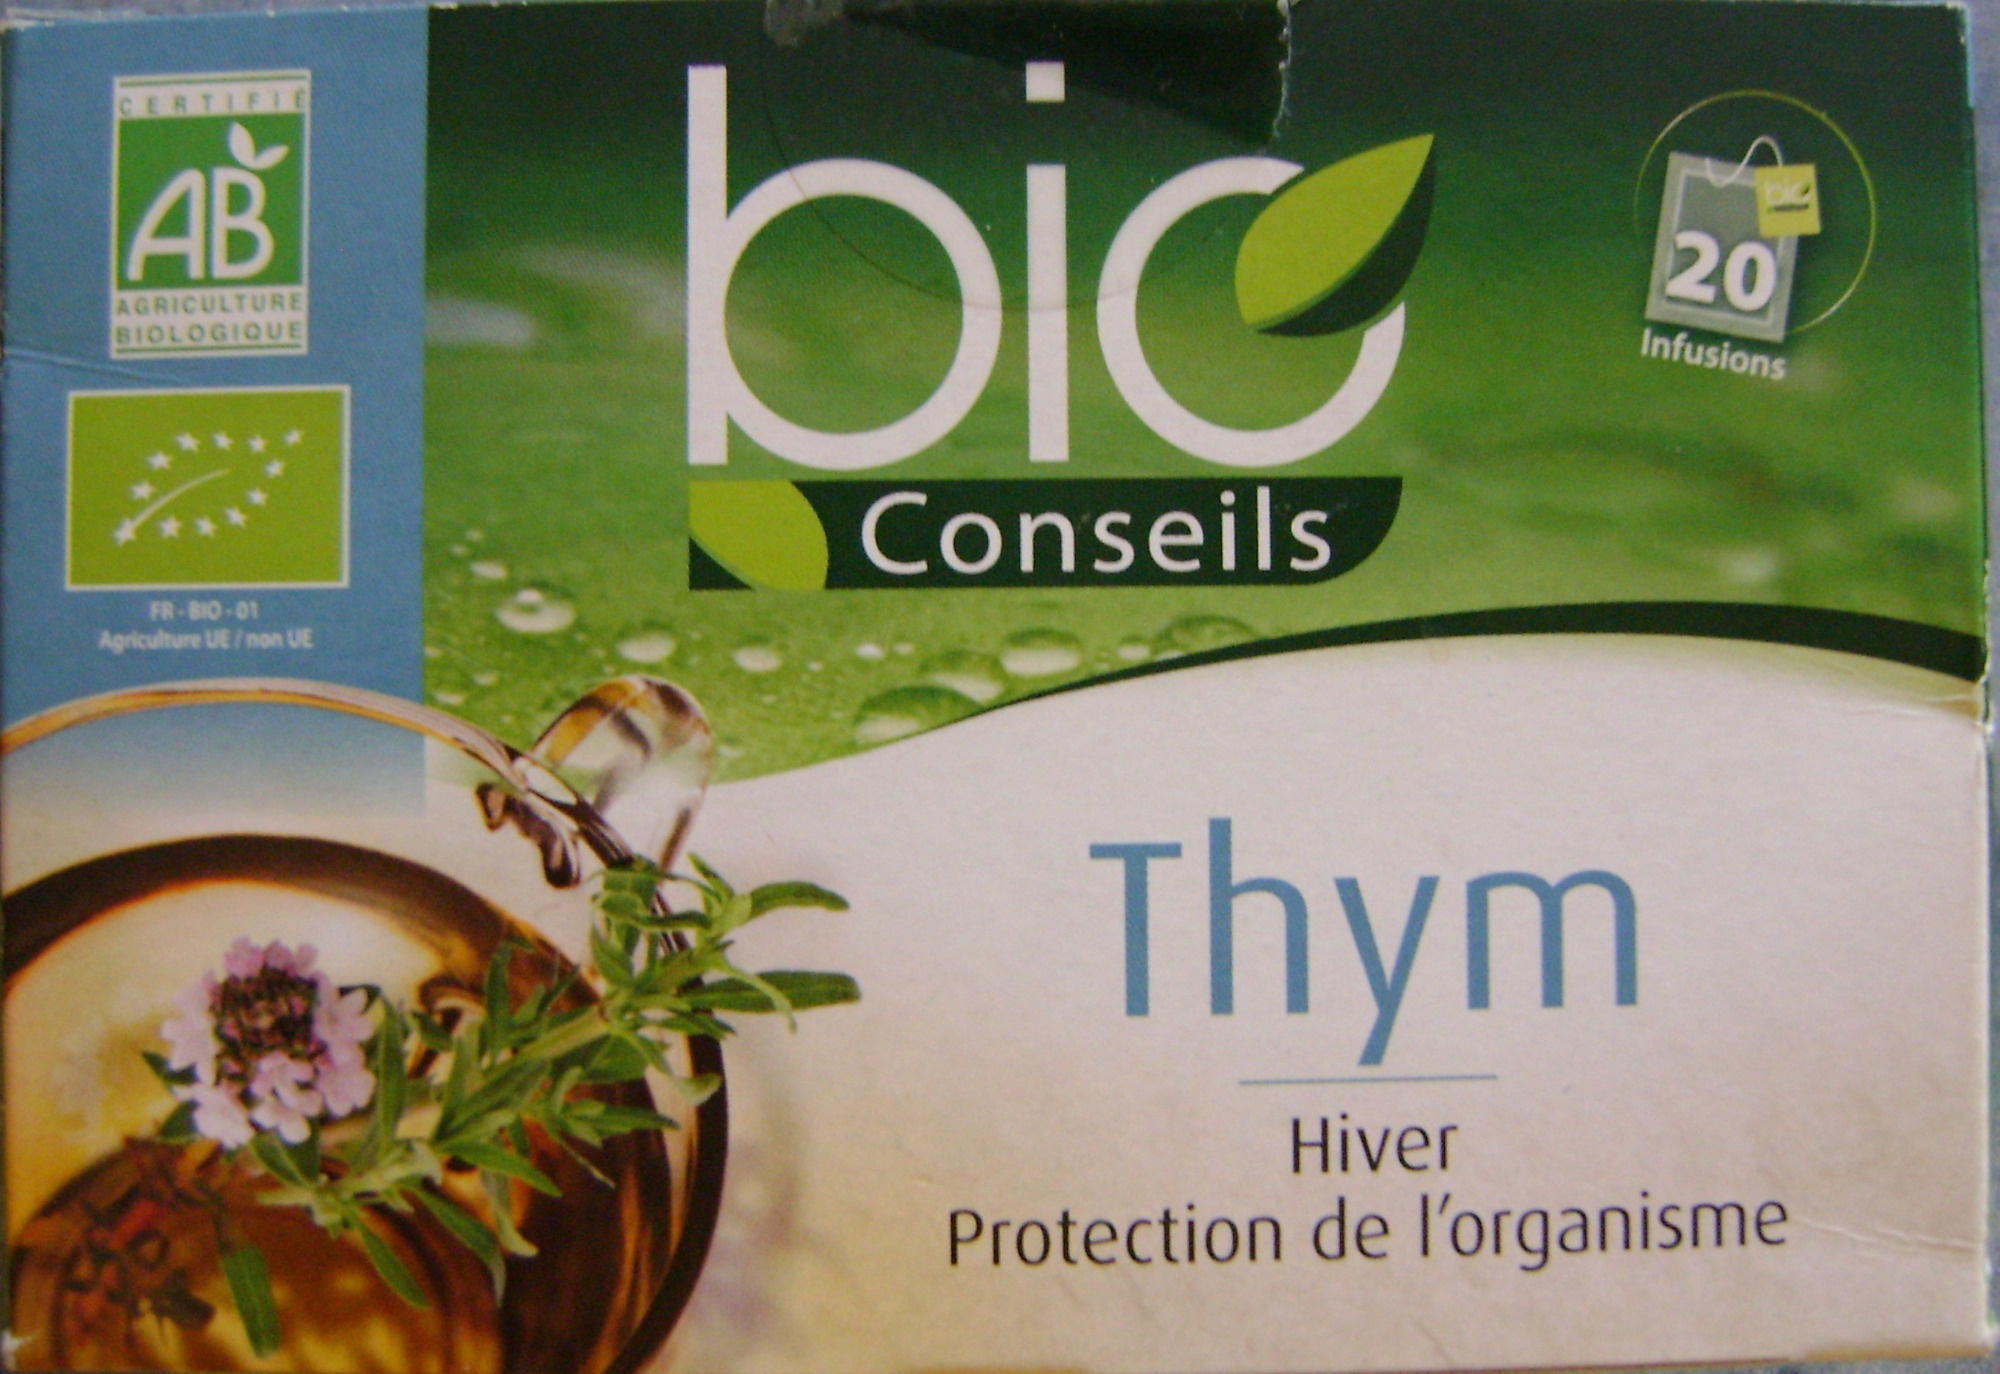 Infusion de Thym - Bio Conseils - 20 infusions